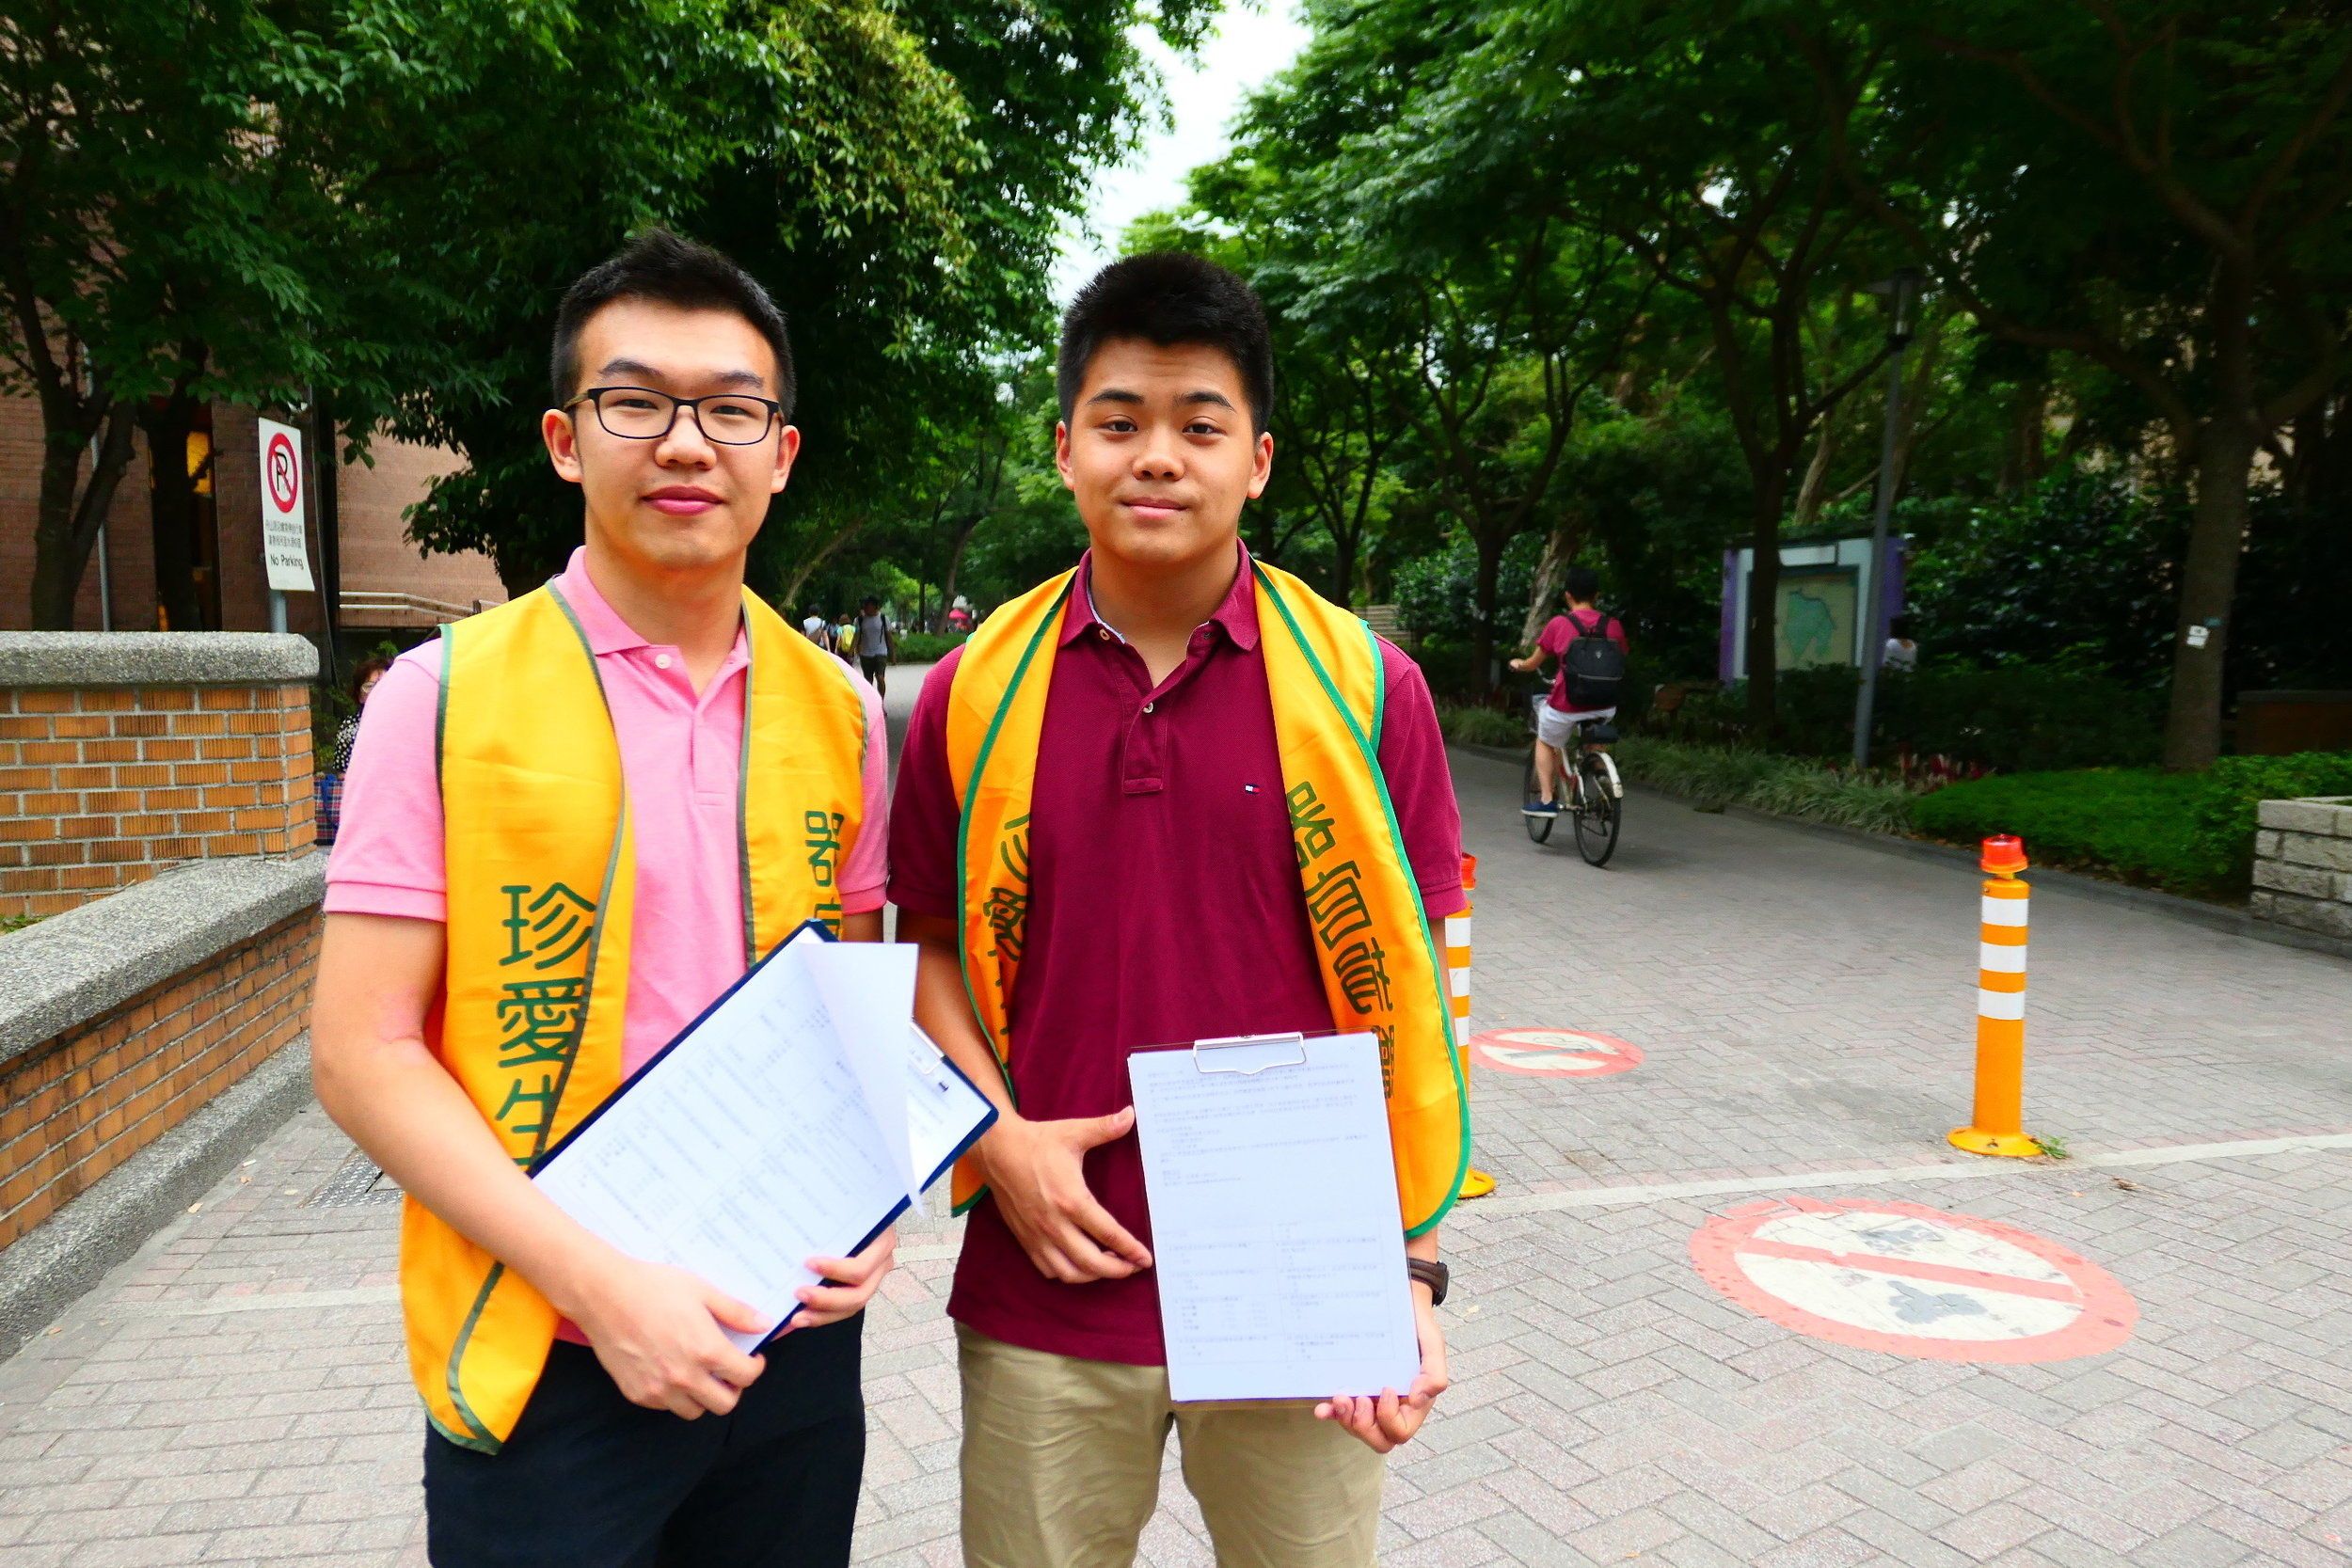 Jonathan Wang (left) and Derrick Lin (right) head to the streets to ask the public about organ donation. Photo courtesy of Jonathan Wang.